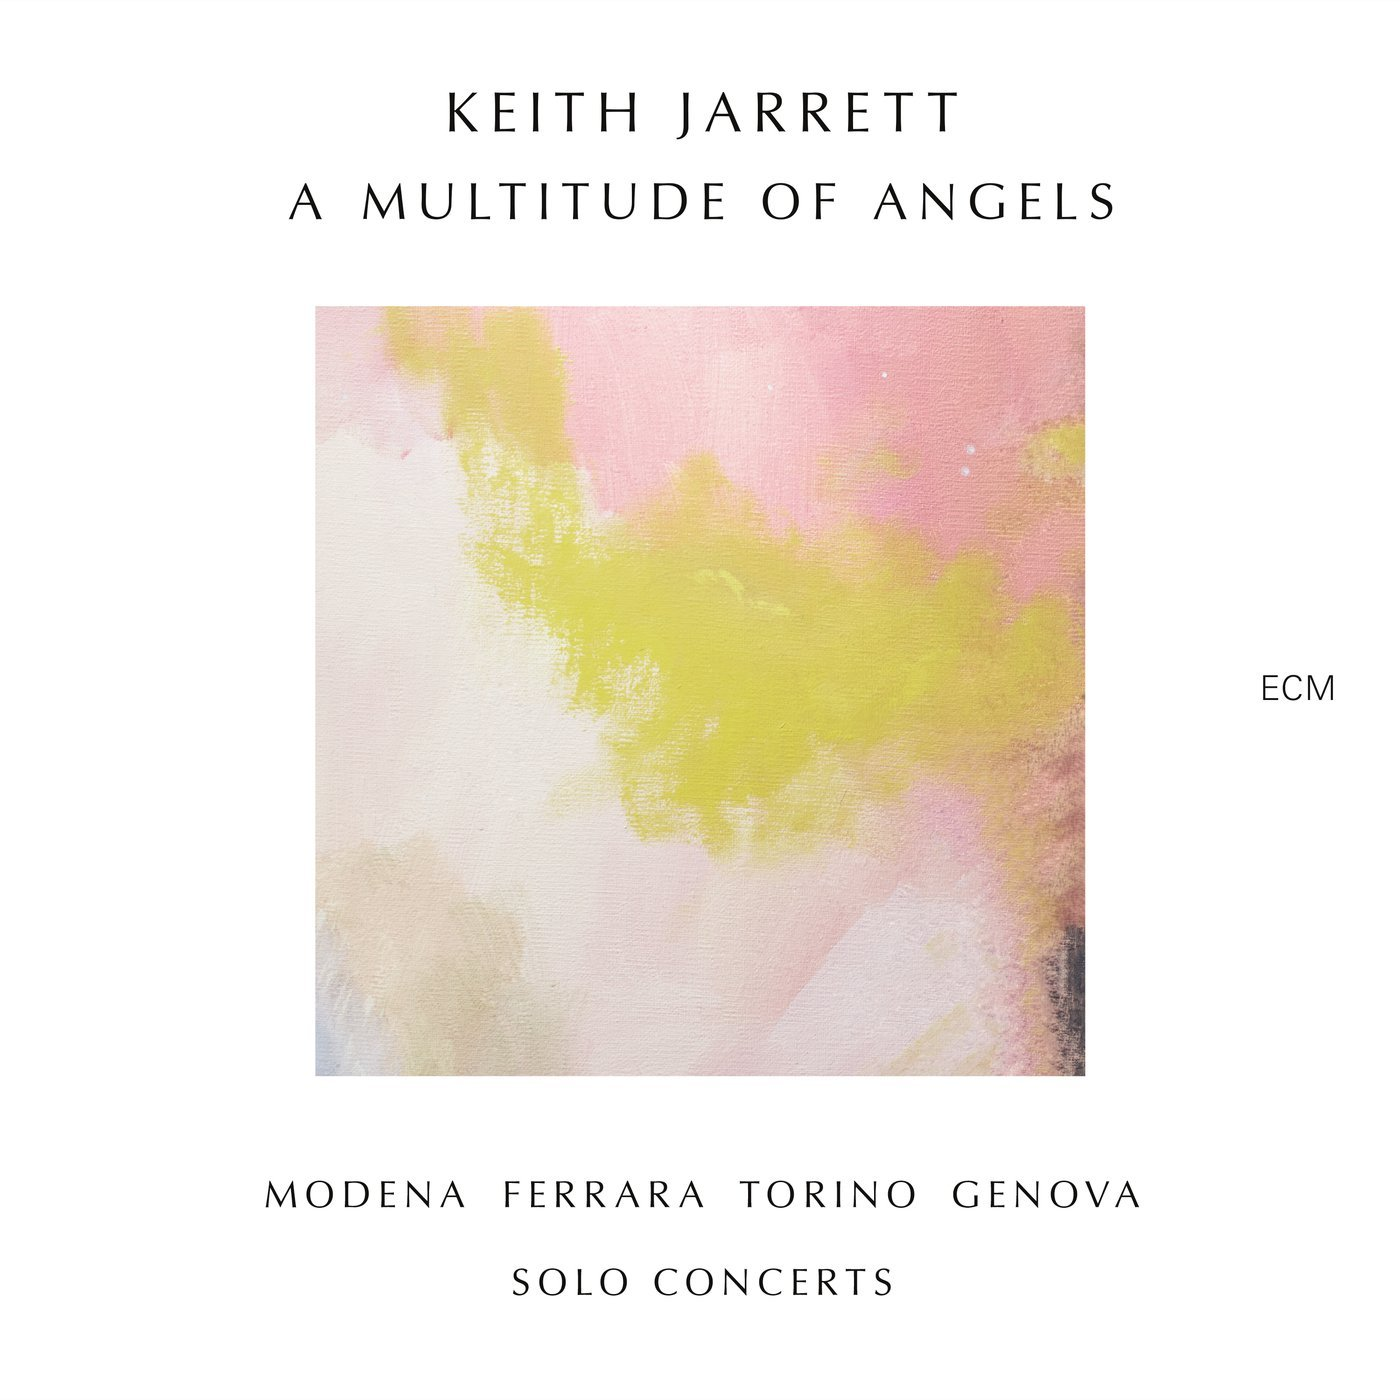 A Multitude of Angels  by  Keith Jarrett  (ECM, Nov. 2016)  Reviewed by  Michael Schachter